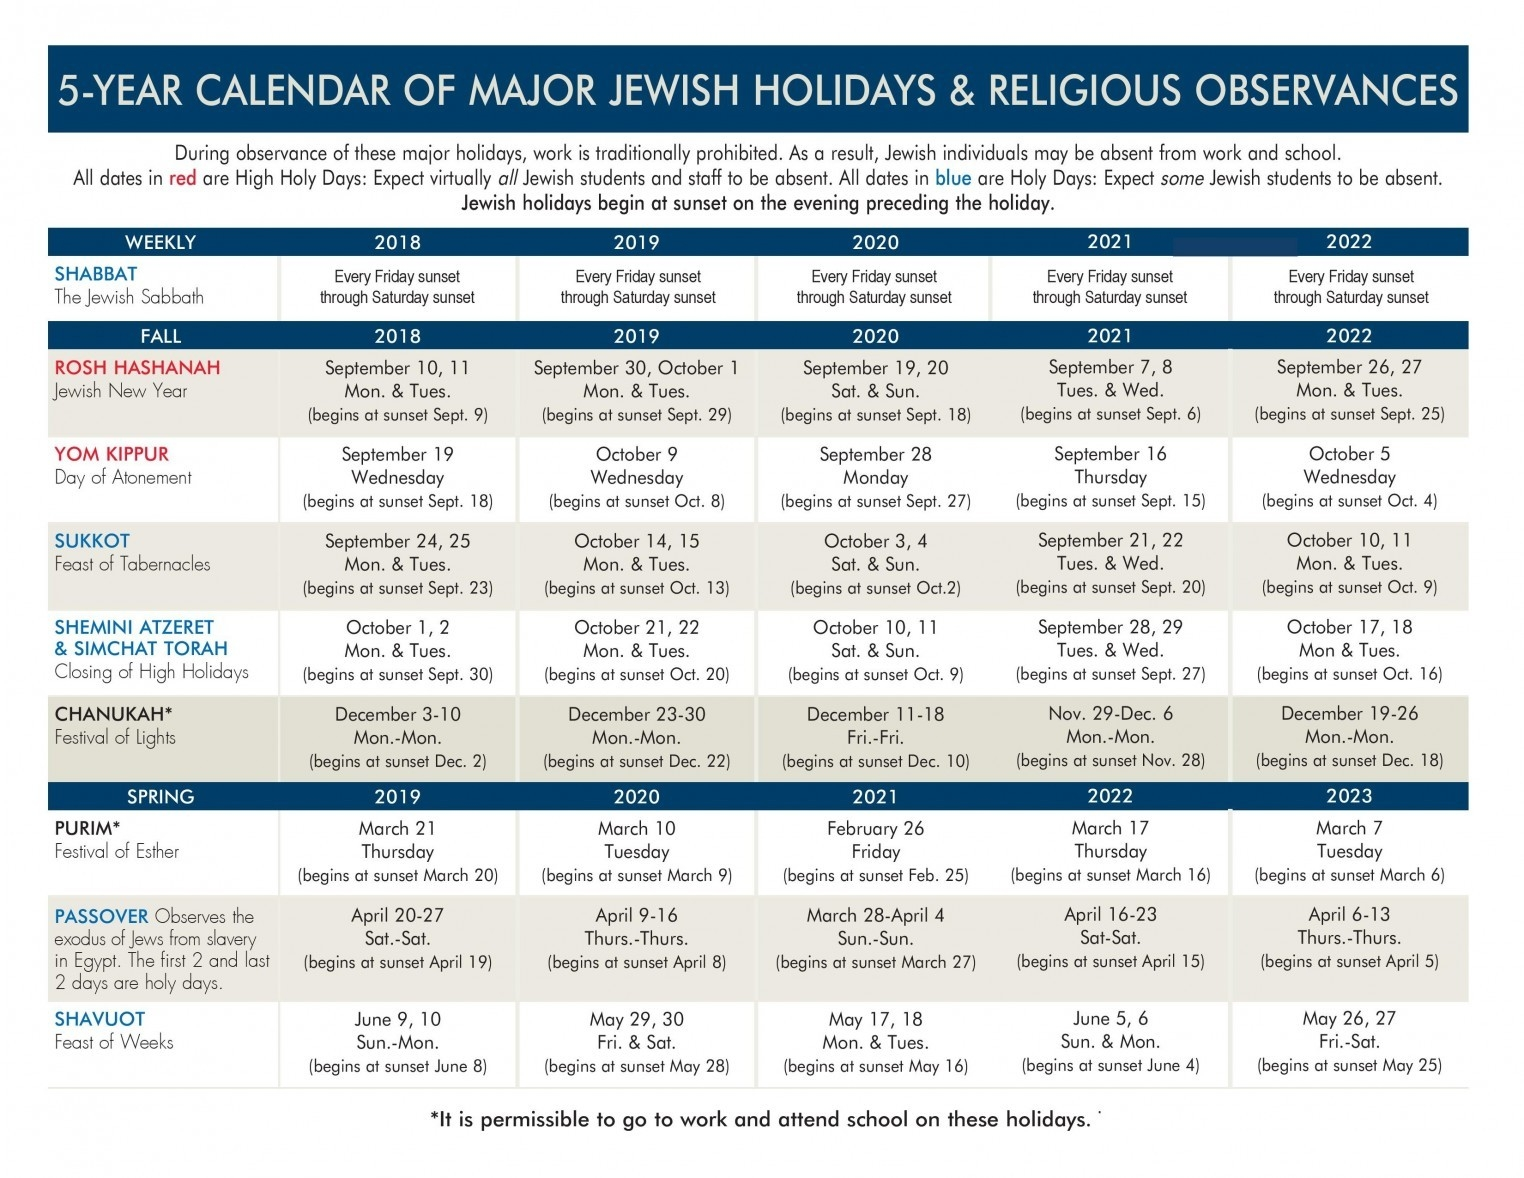 5-Year Jewish Holiday Calendar | Jewish Federation Of-2020 Jewish Calendar With Holidays